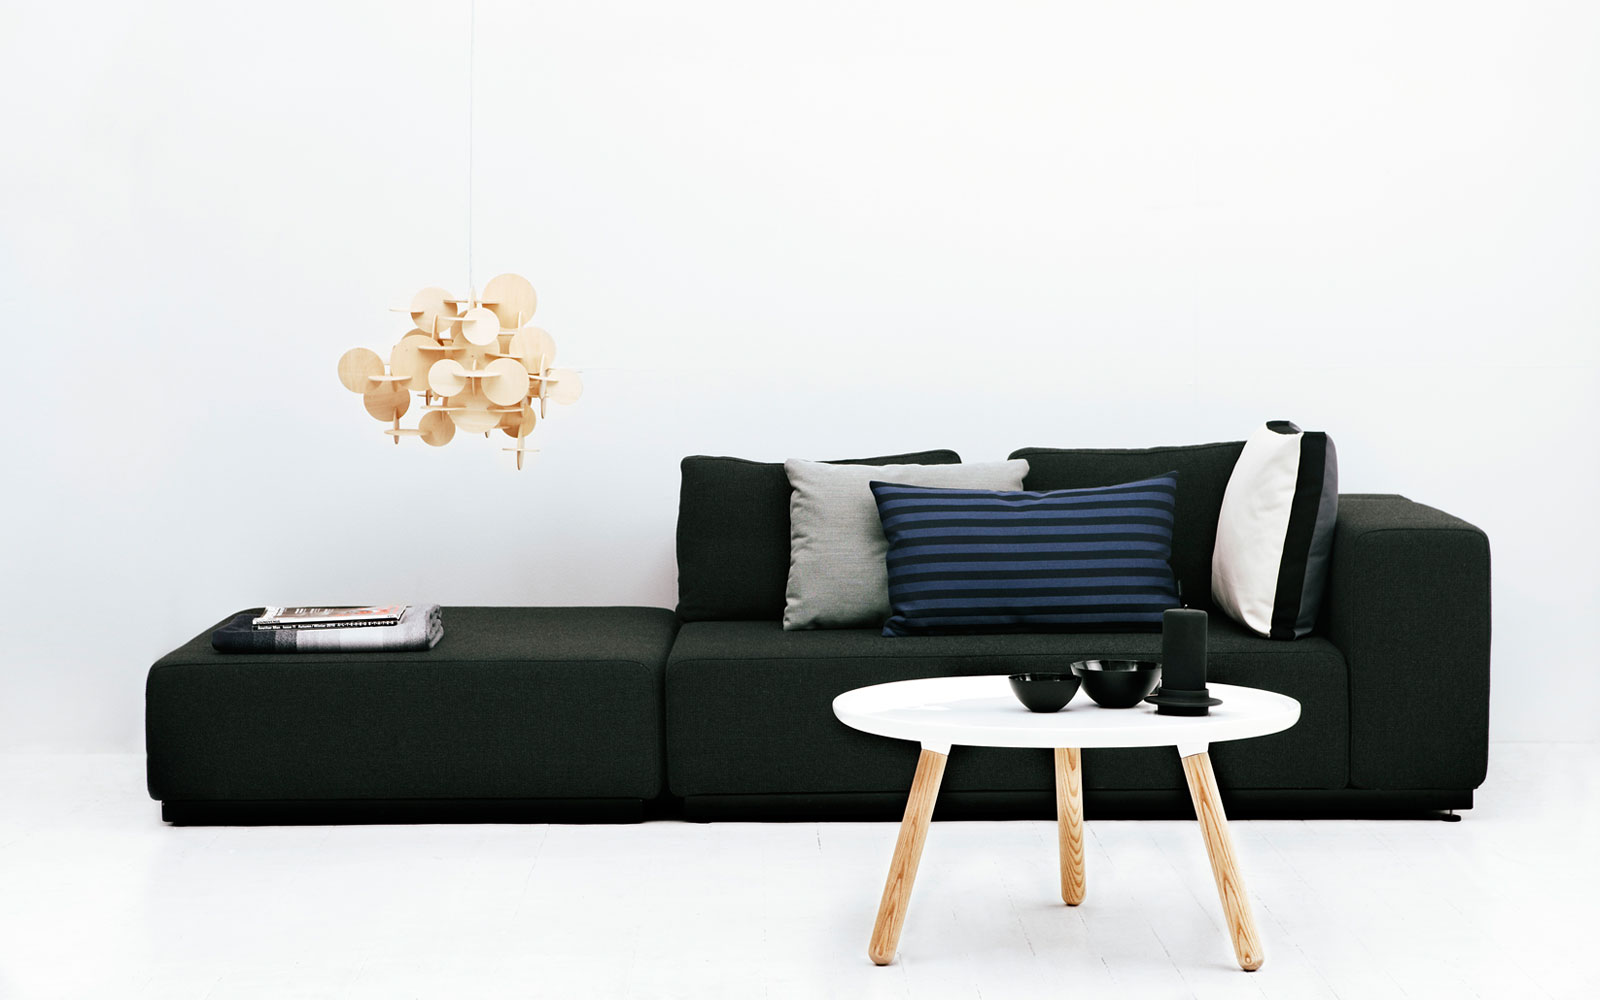 Bau lamp nature hanging sofa tablo